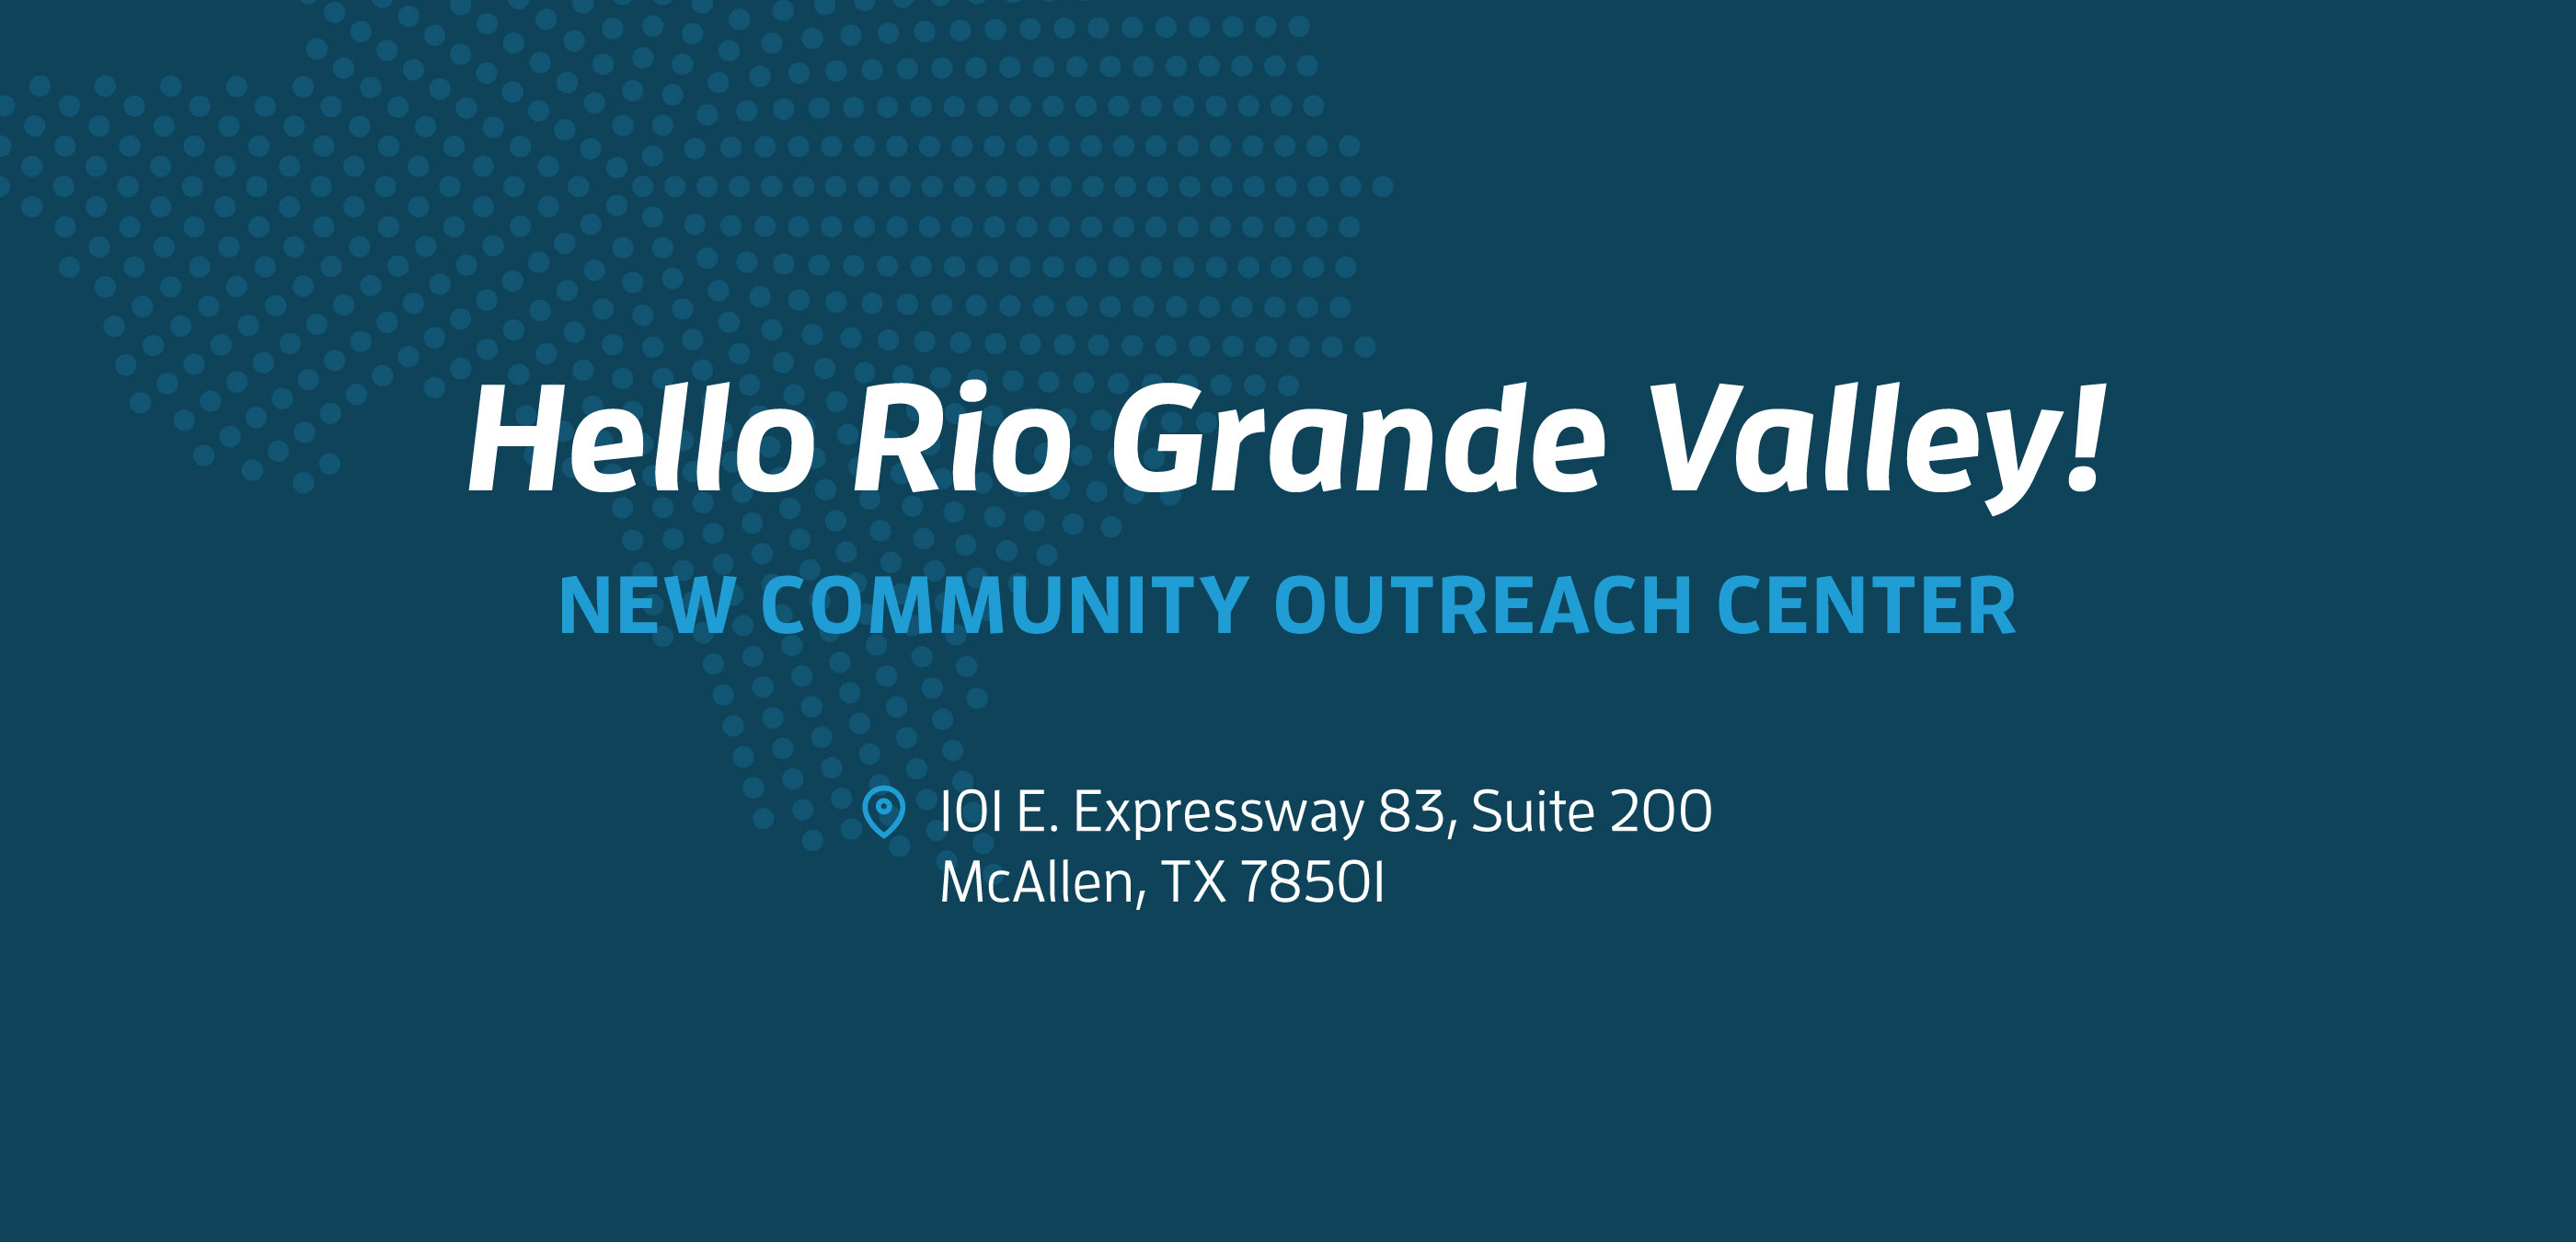 Hello Rio Grande Valley! New Communtiy Outreach Center